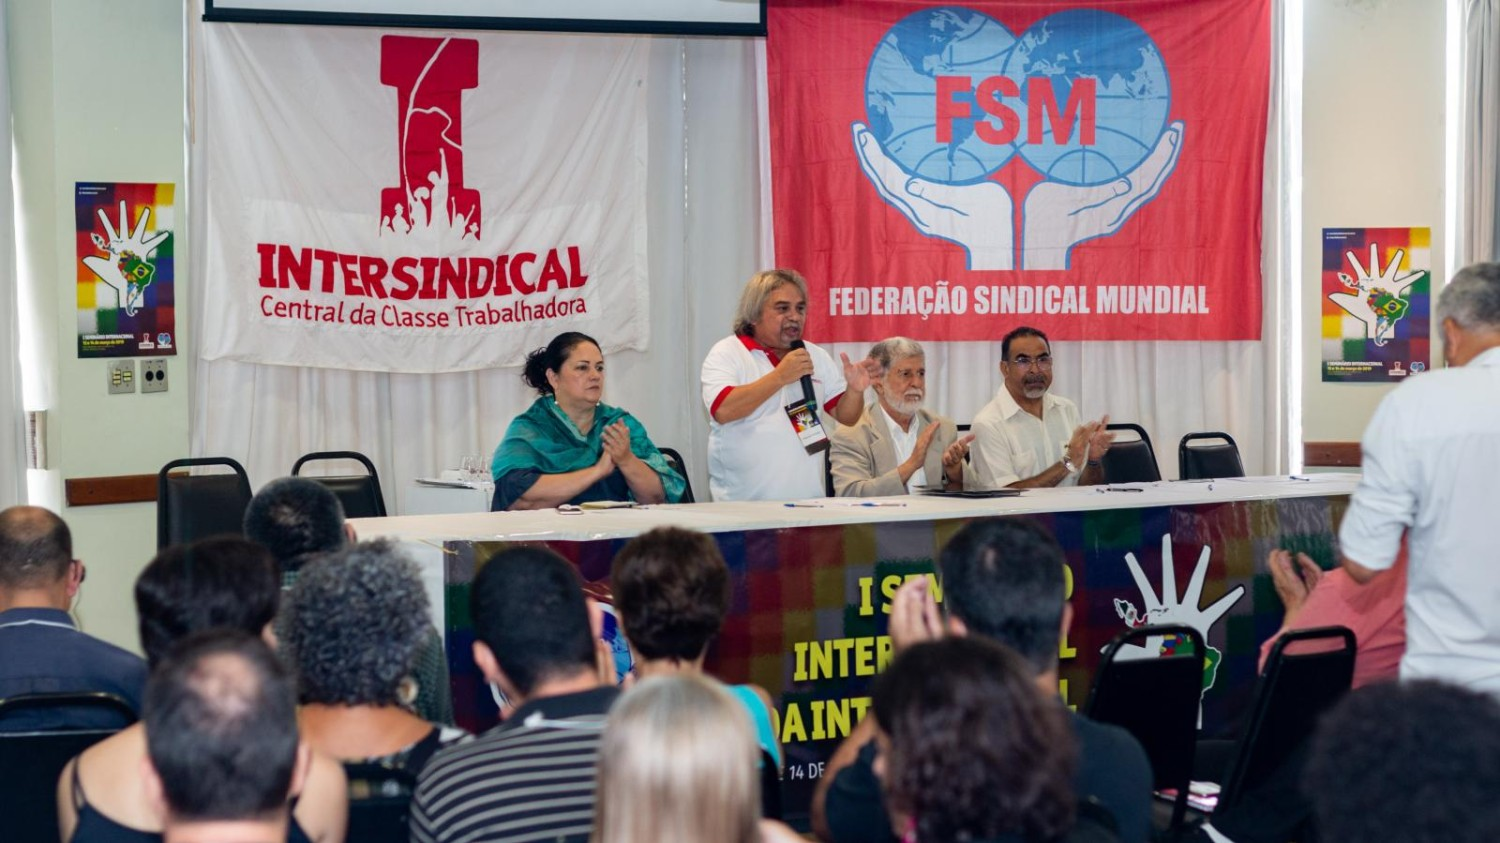 Intersindical realiza o 1º Seminário Internacional